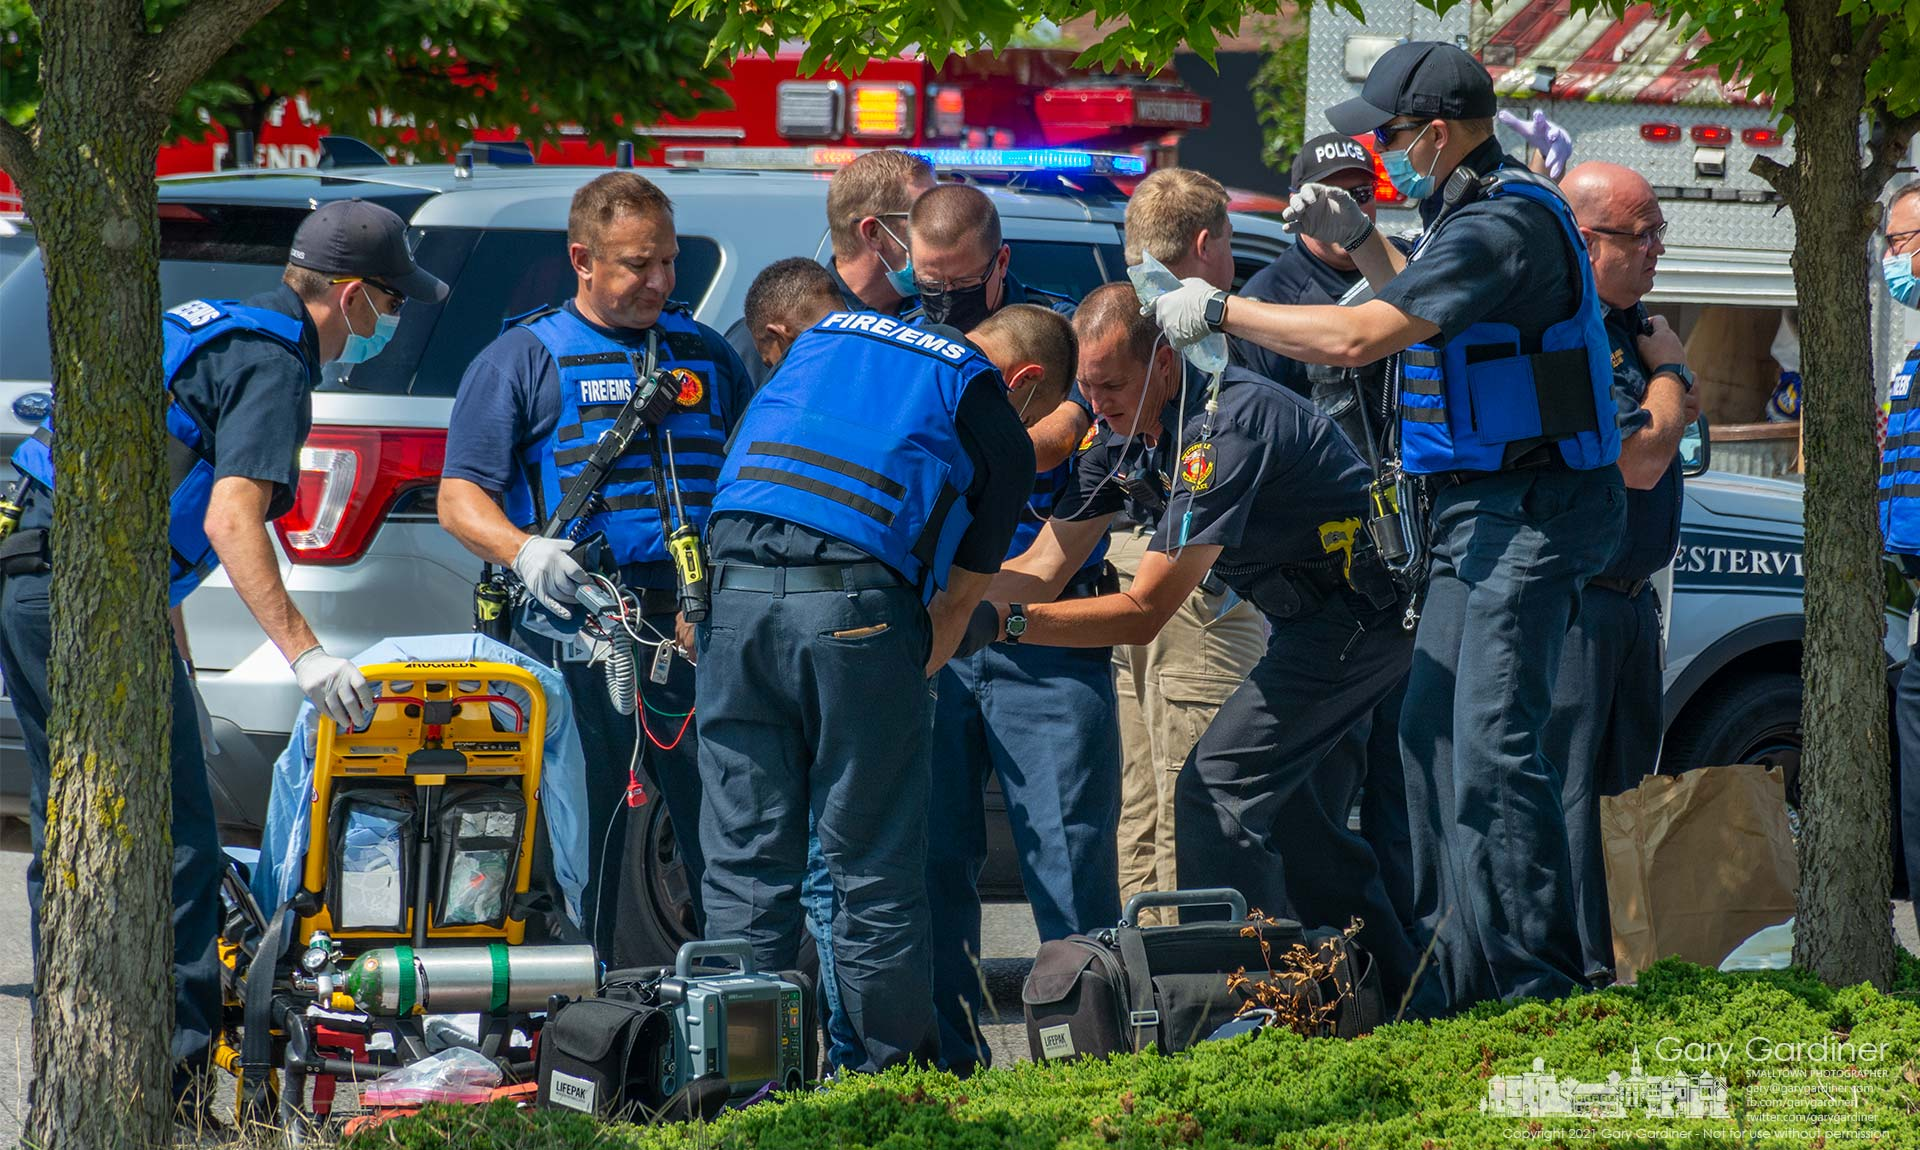 A Westerville police officer searches a man being treated for a stab wound by fire department medics after a fight in a shopping center parking lot Monday morning. My Final Photo for Aug. , 2021.